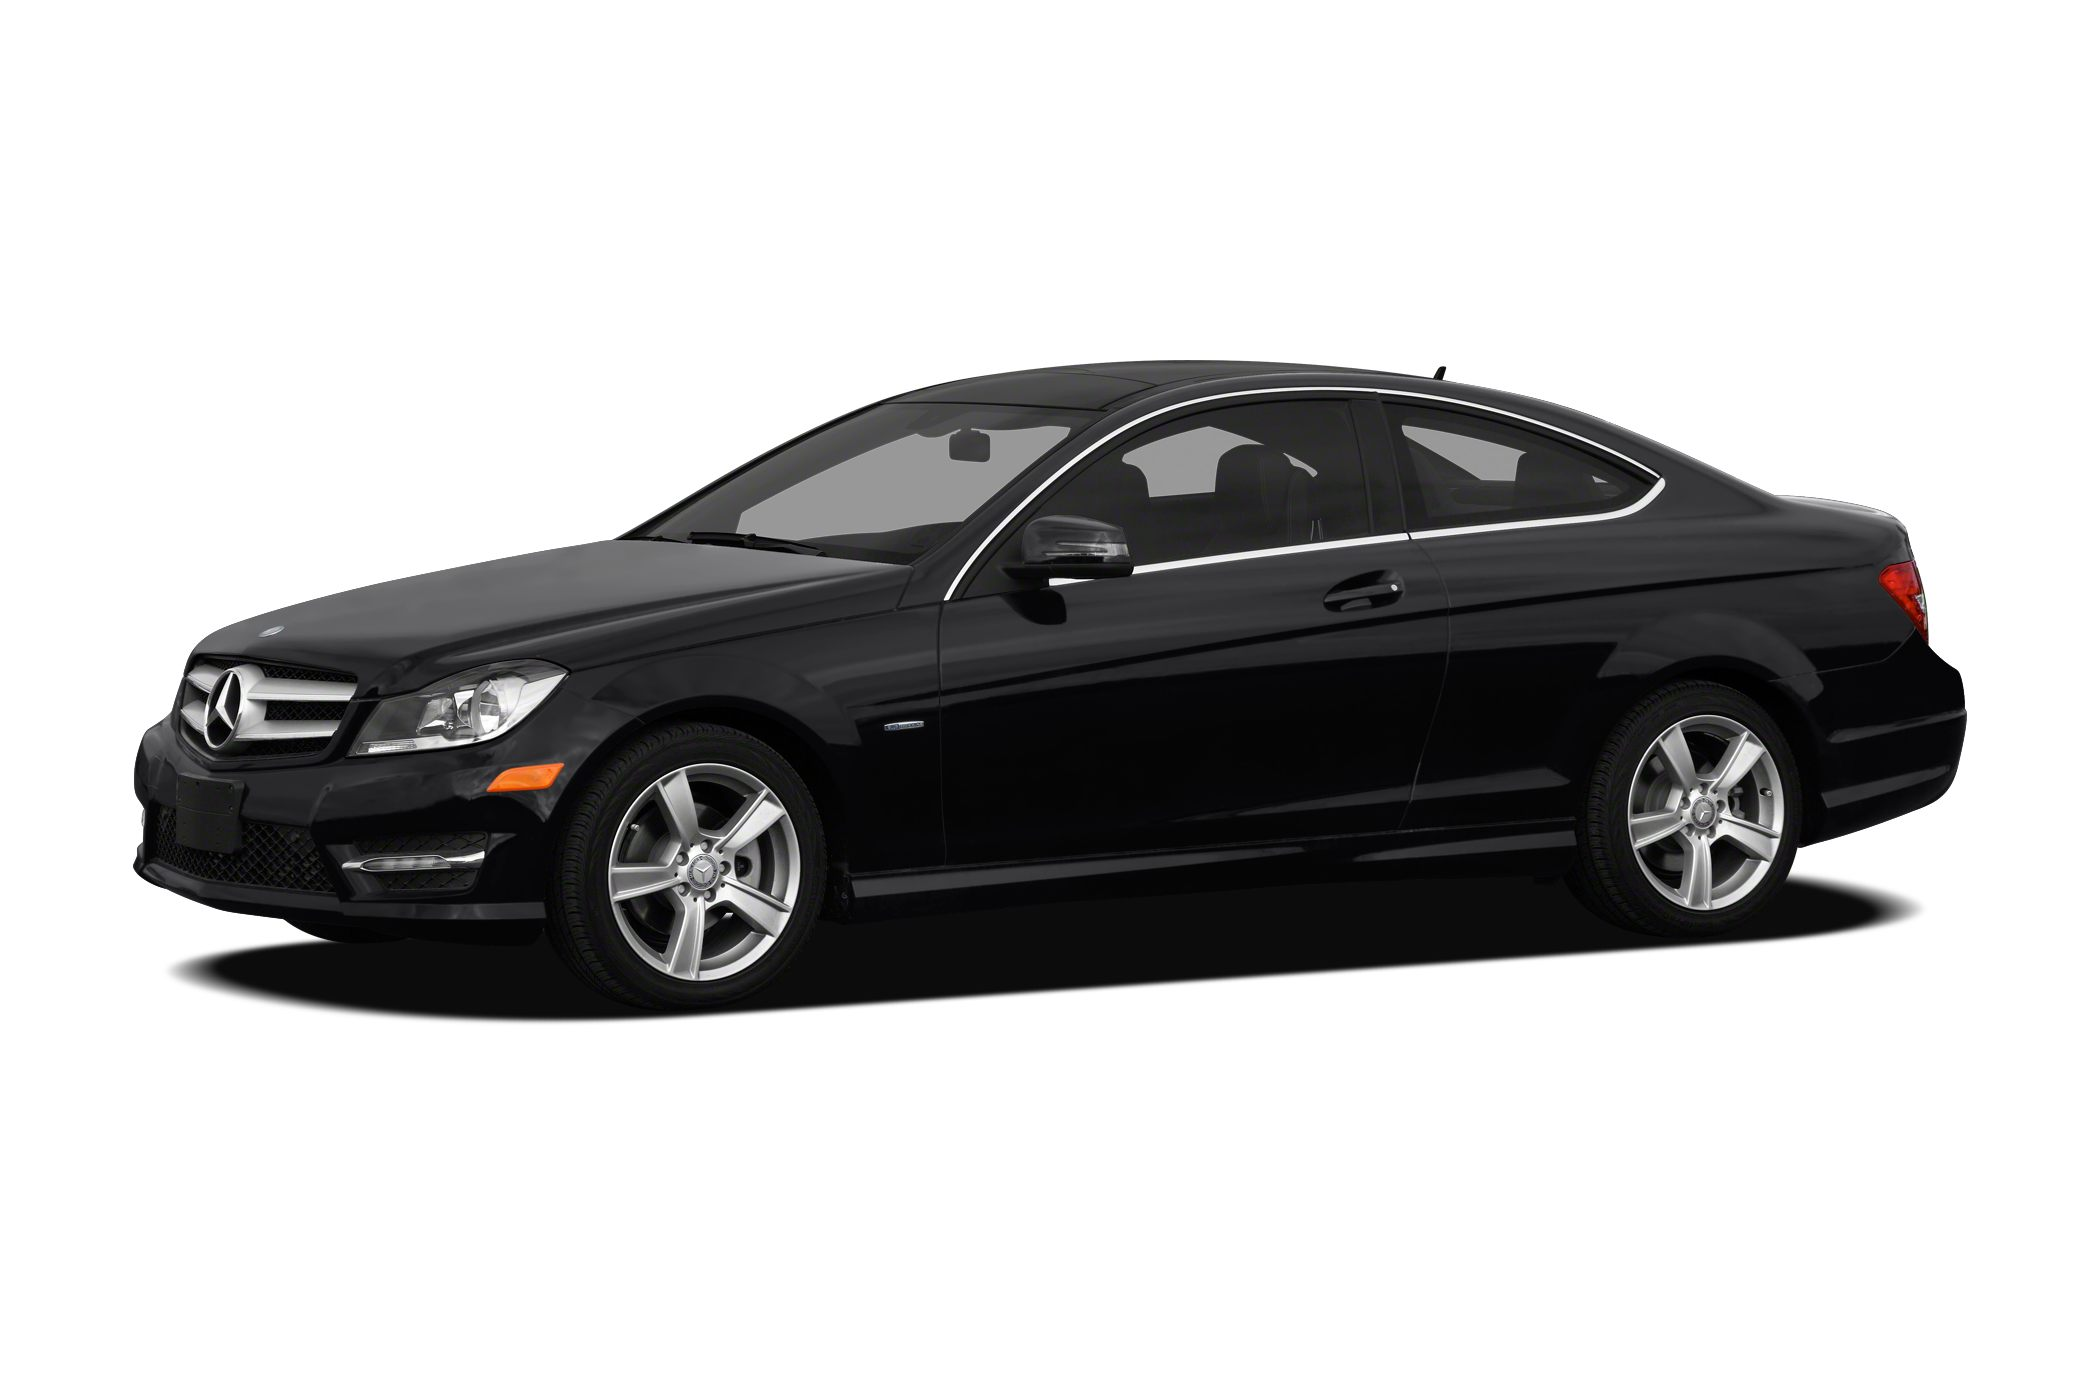 2012 Mercedes-Benz C-Class C250 Coupe for sale in Miami for $22,999 with 43,013 miles.